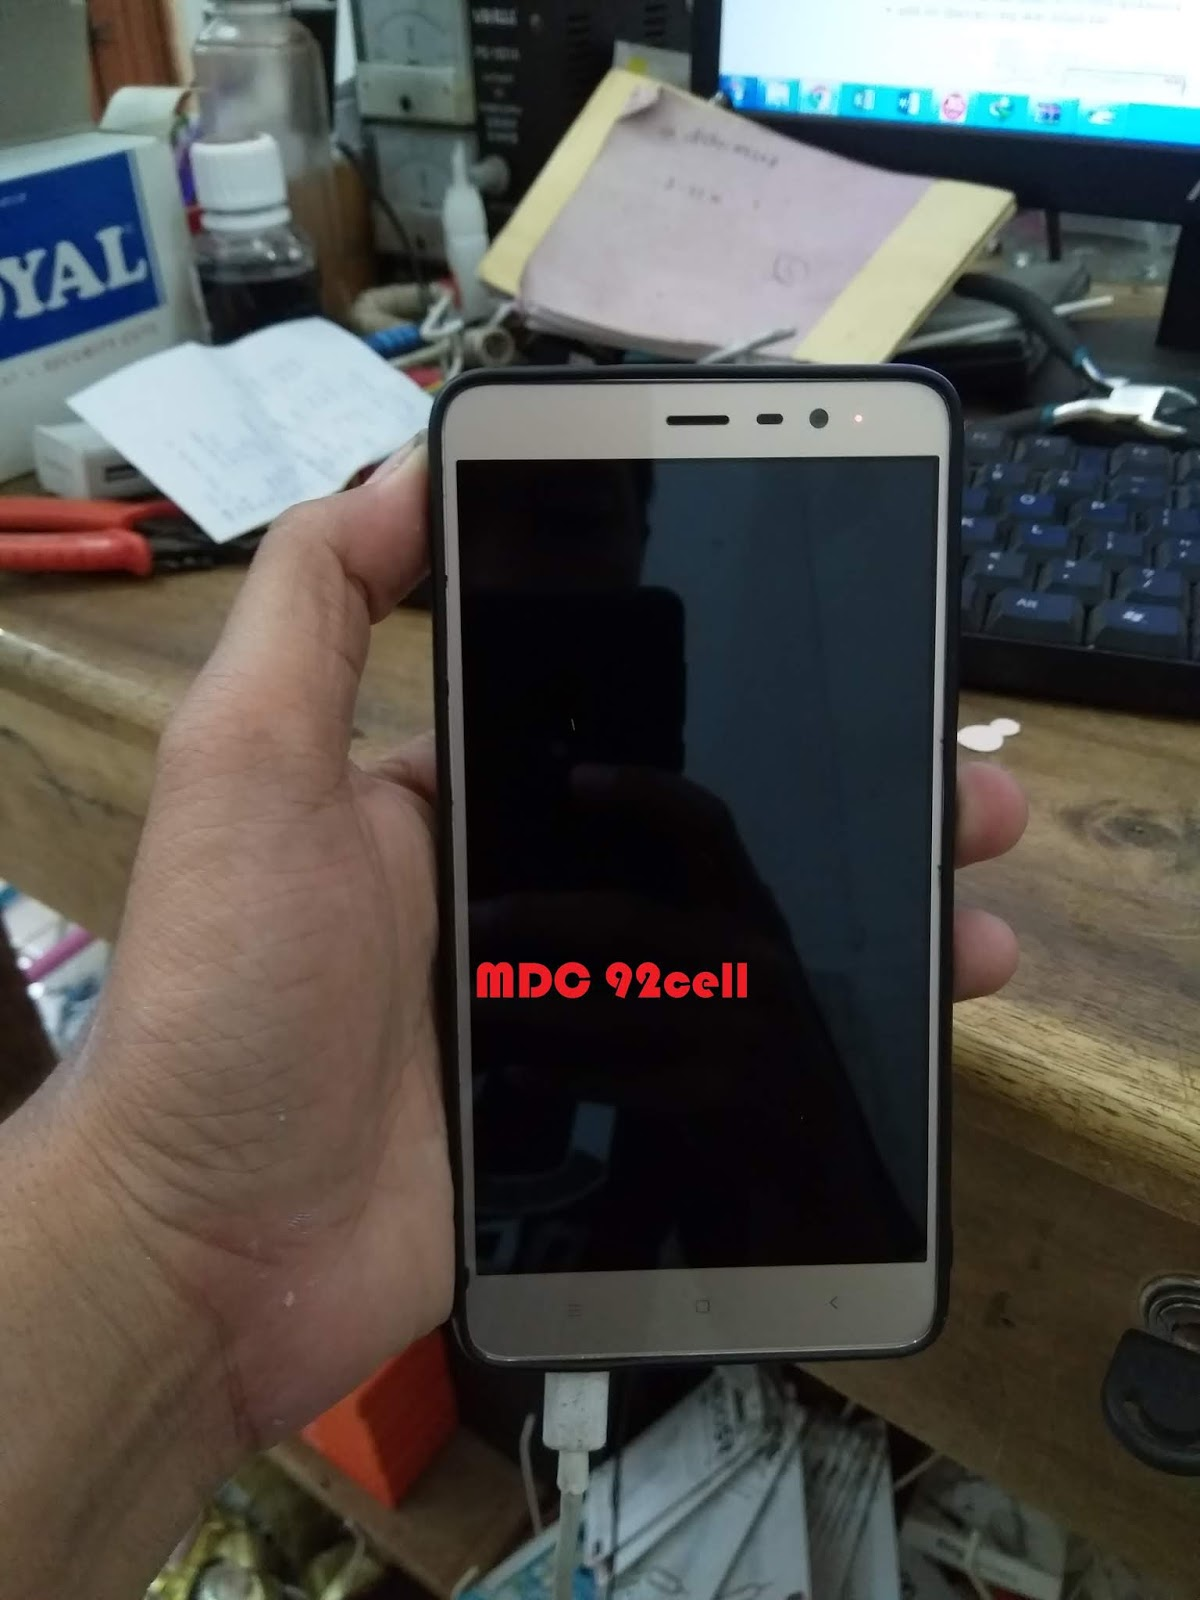 Flash Xiaomi redmi note 3 pro kenzo bootloop lupa pola/pin hilang 4g